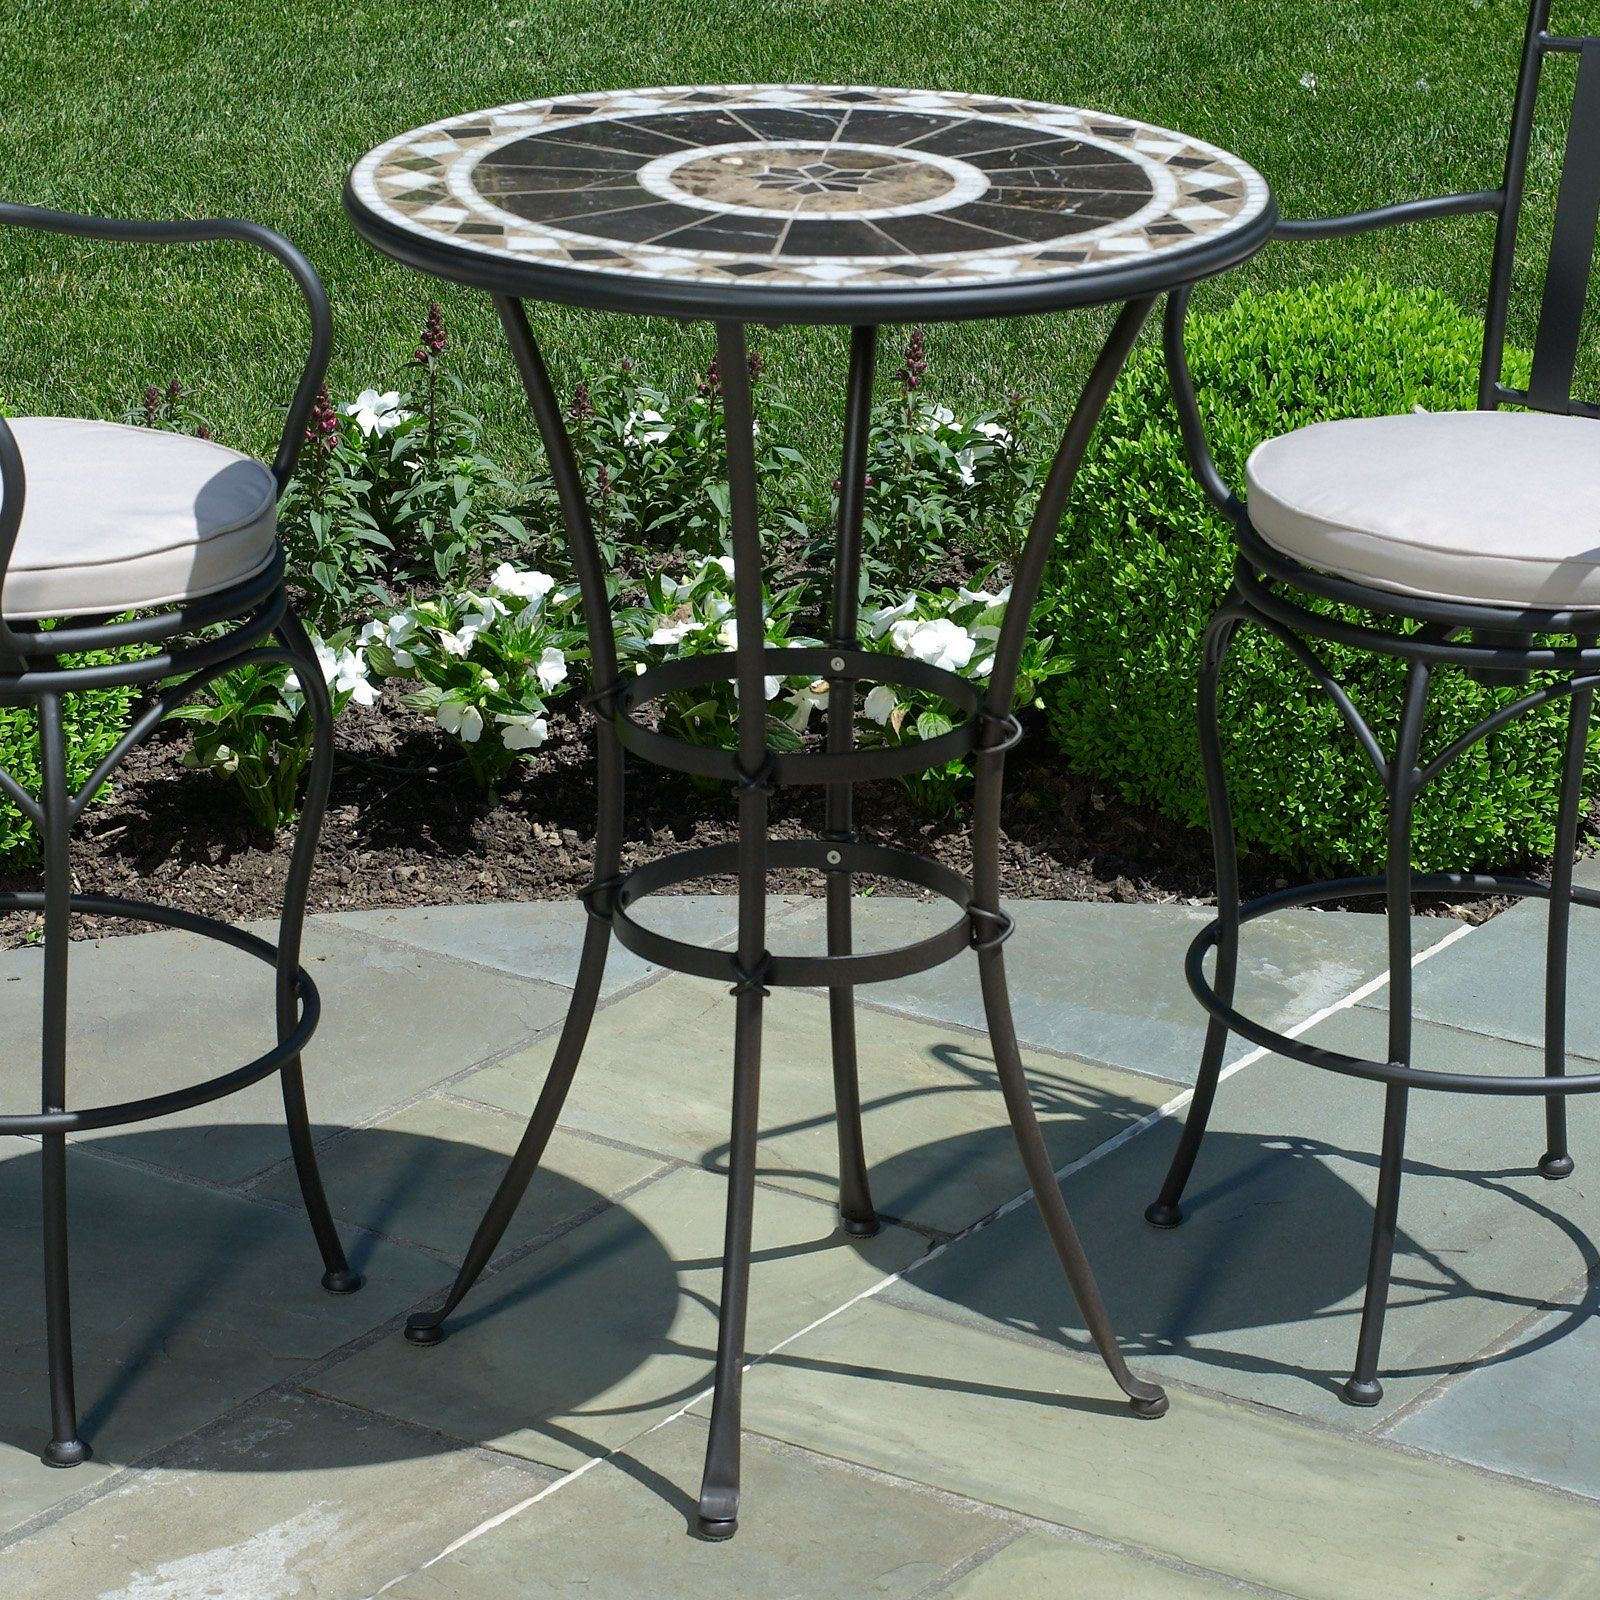 Outdoor table top ideas - Small Elegant Peerless Round Table And Stools Bar Height Patio Furniture Wicker An Essential Element To